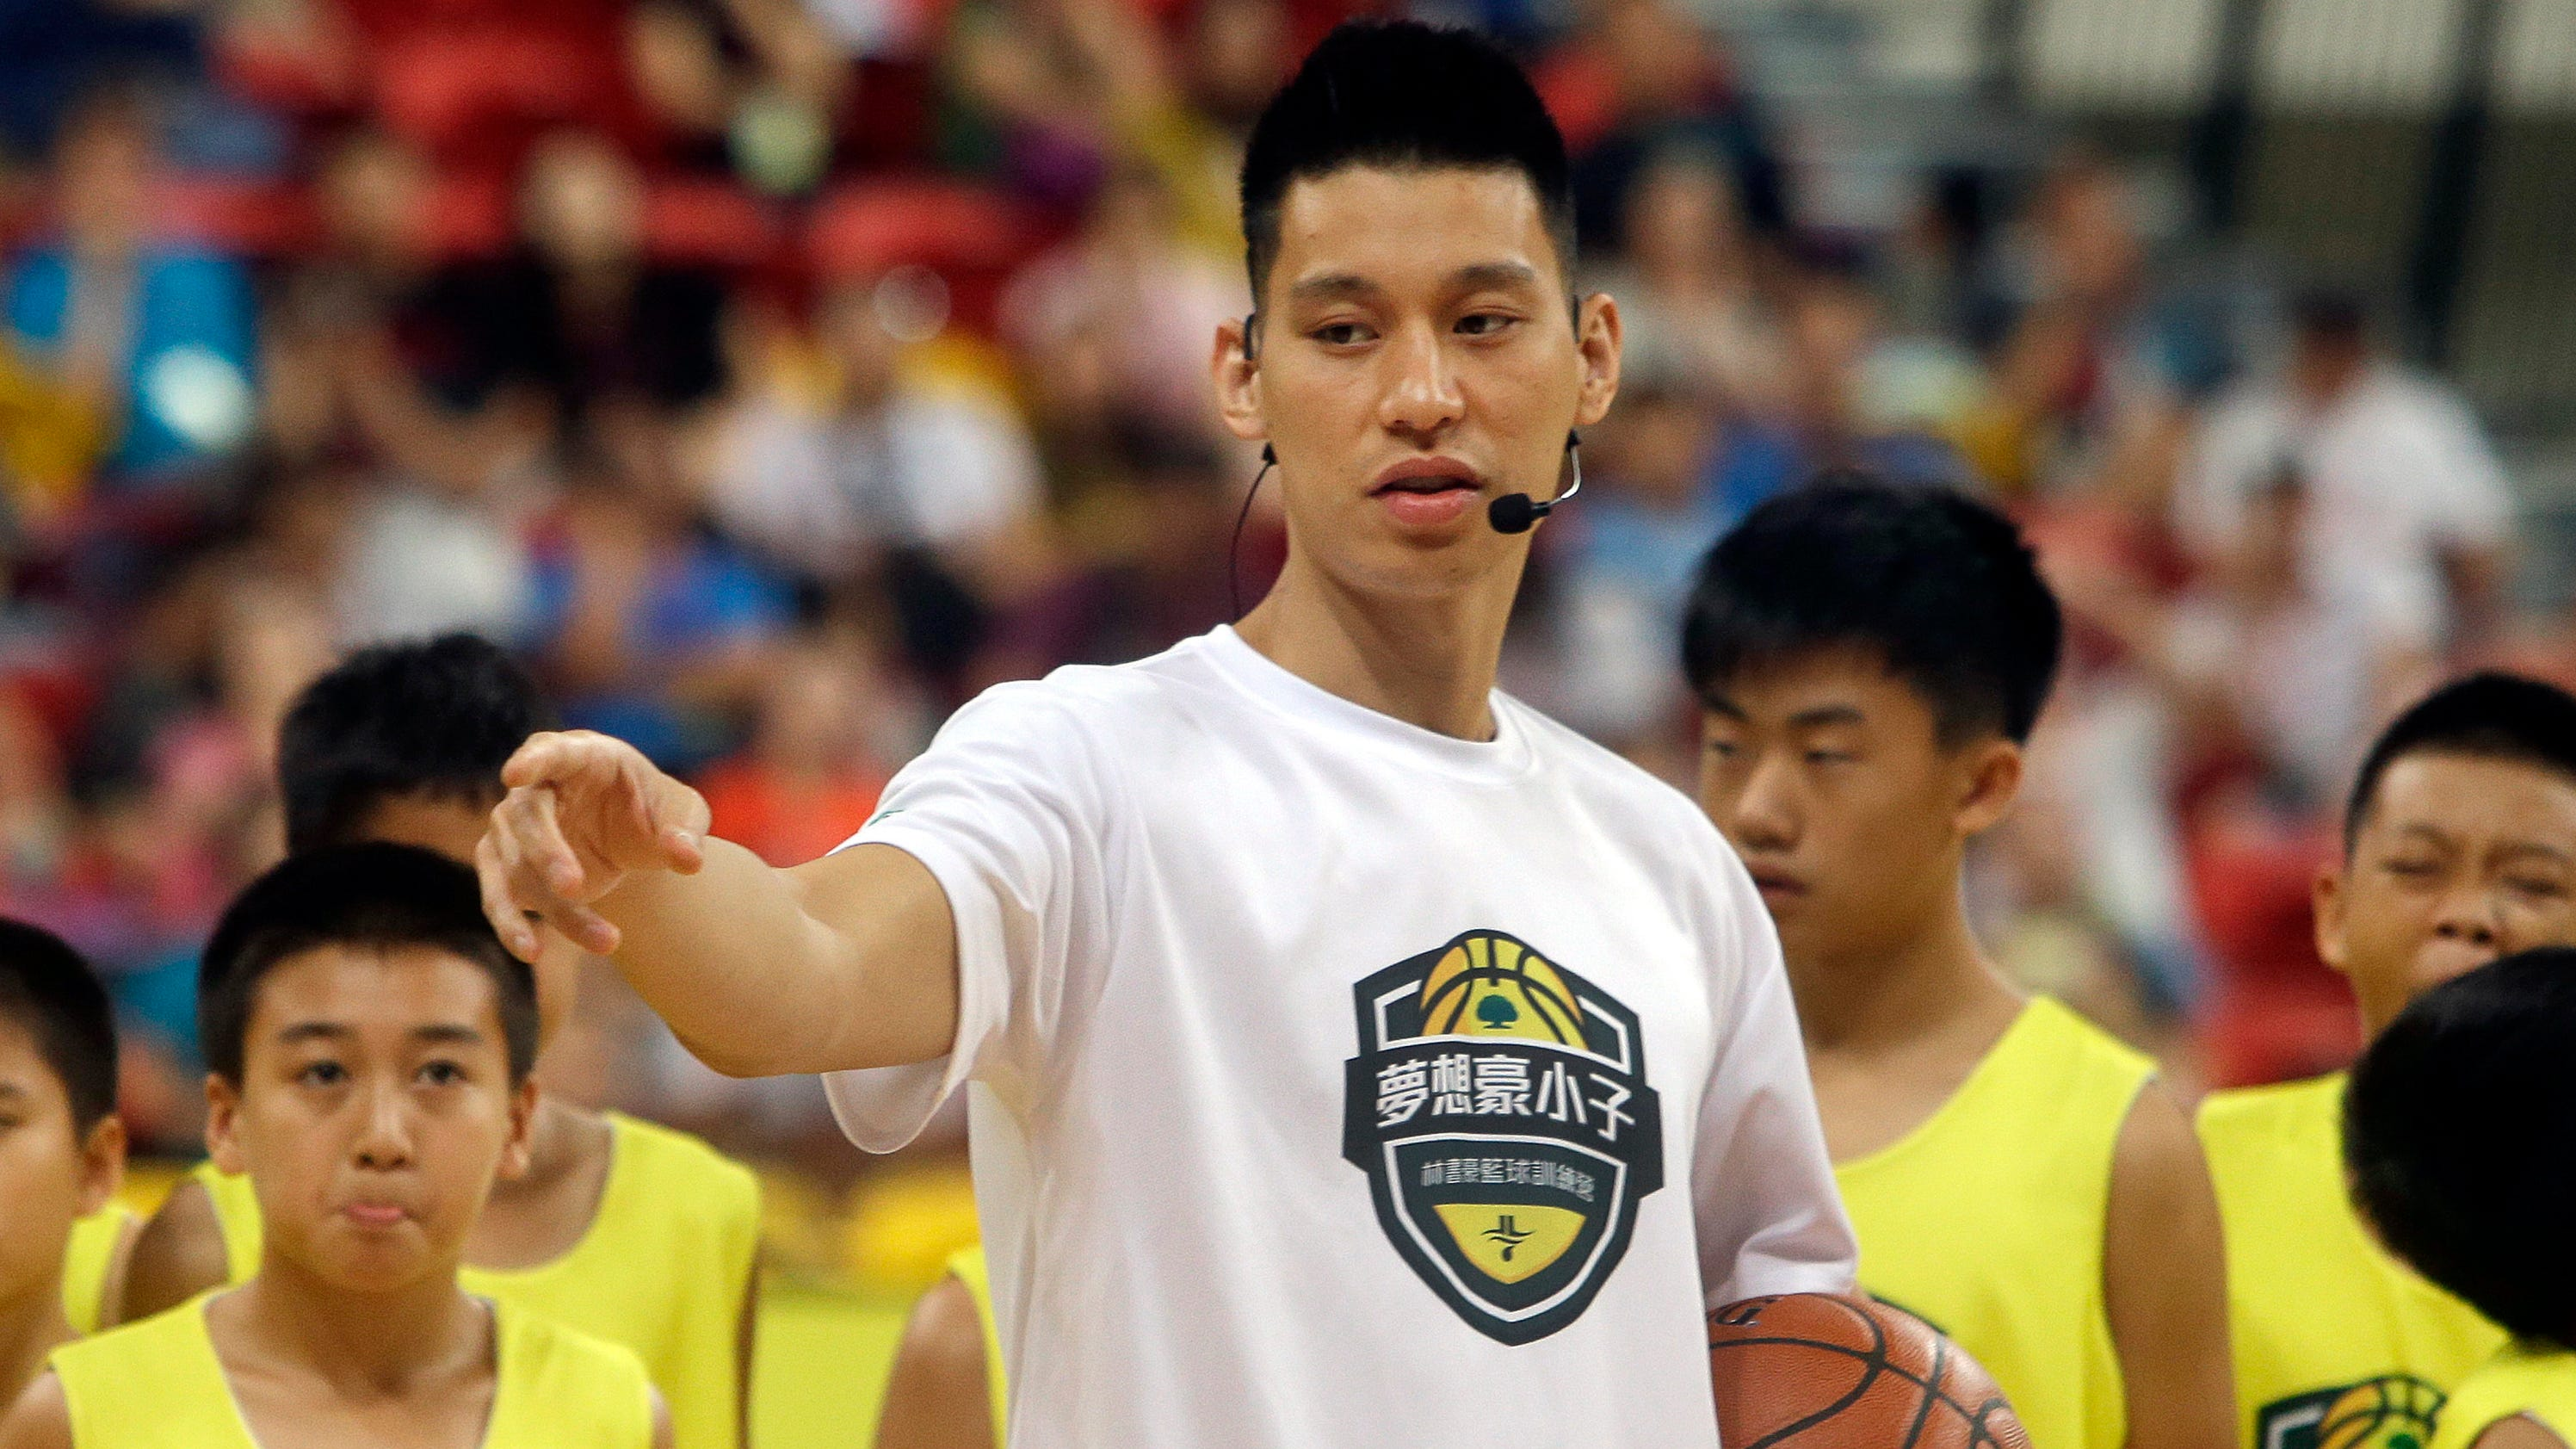 www.usatoday.com: Jeremy Lin 'not naming or shaming anyone' after alleged racist incident